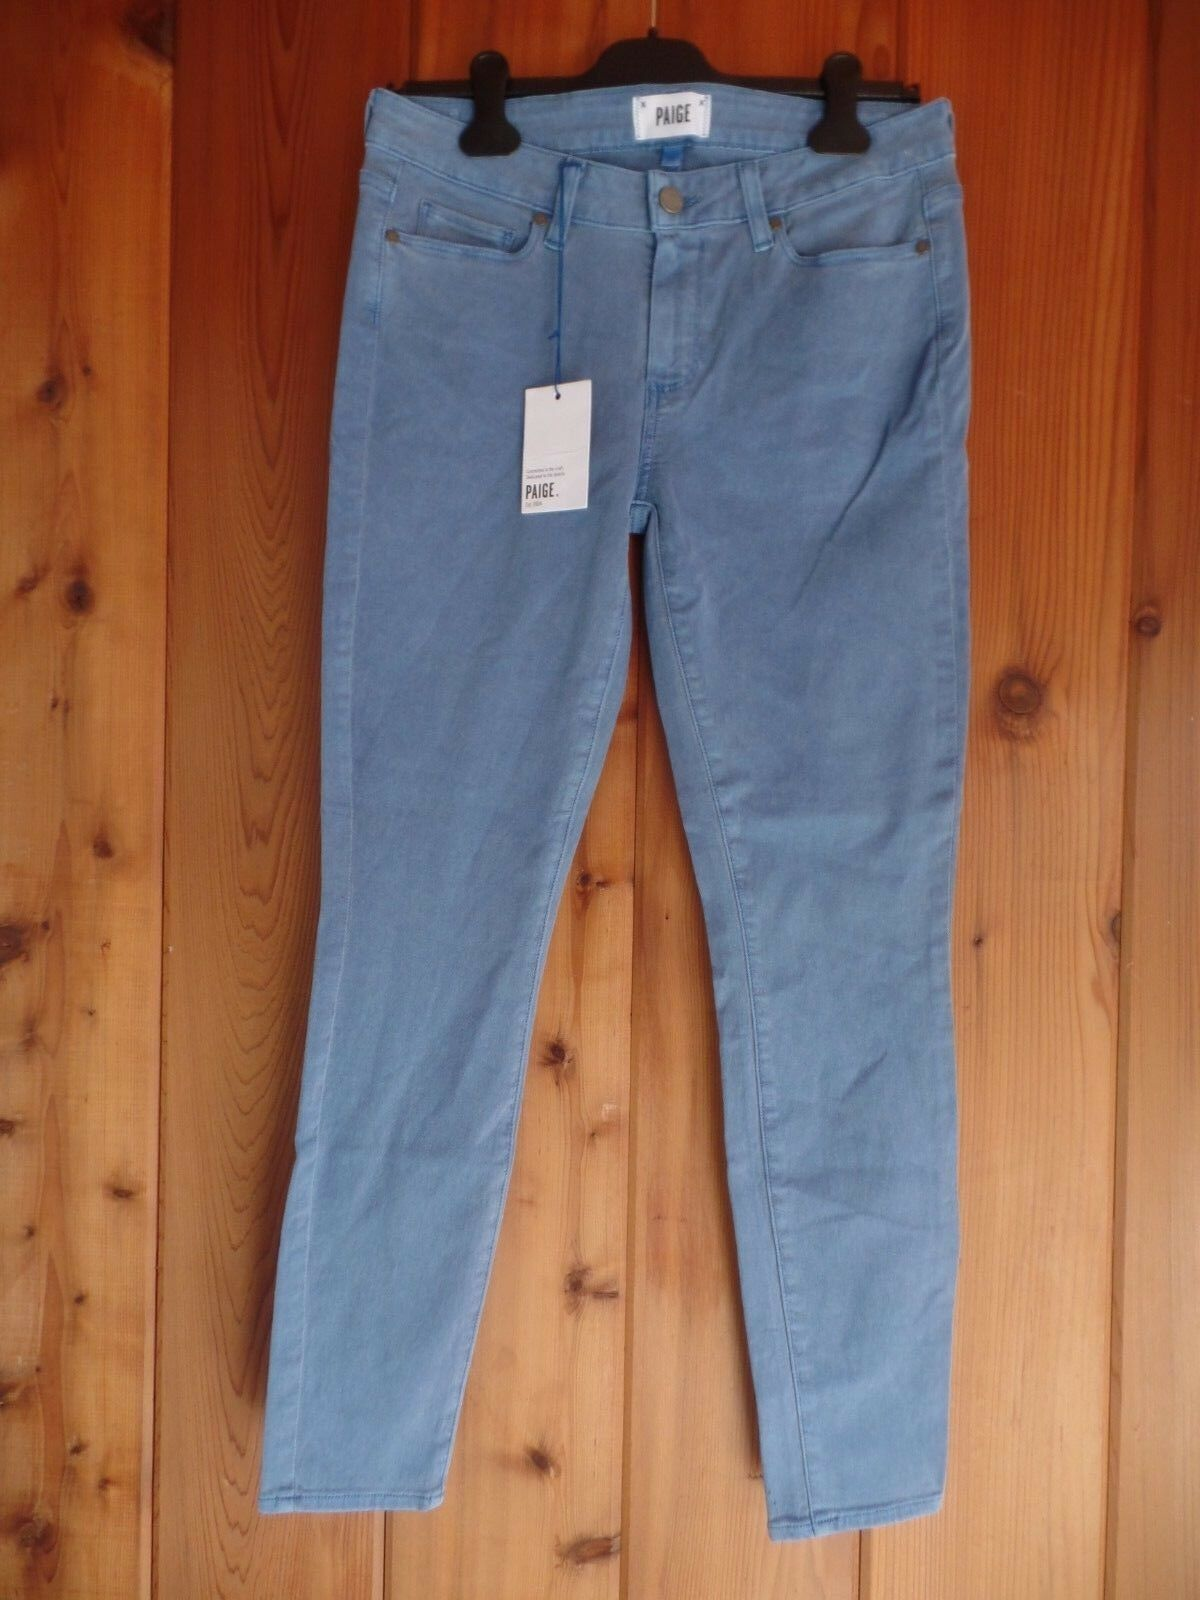 New Paige Verdugo ankle cyan bluee jeans Size 30